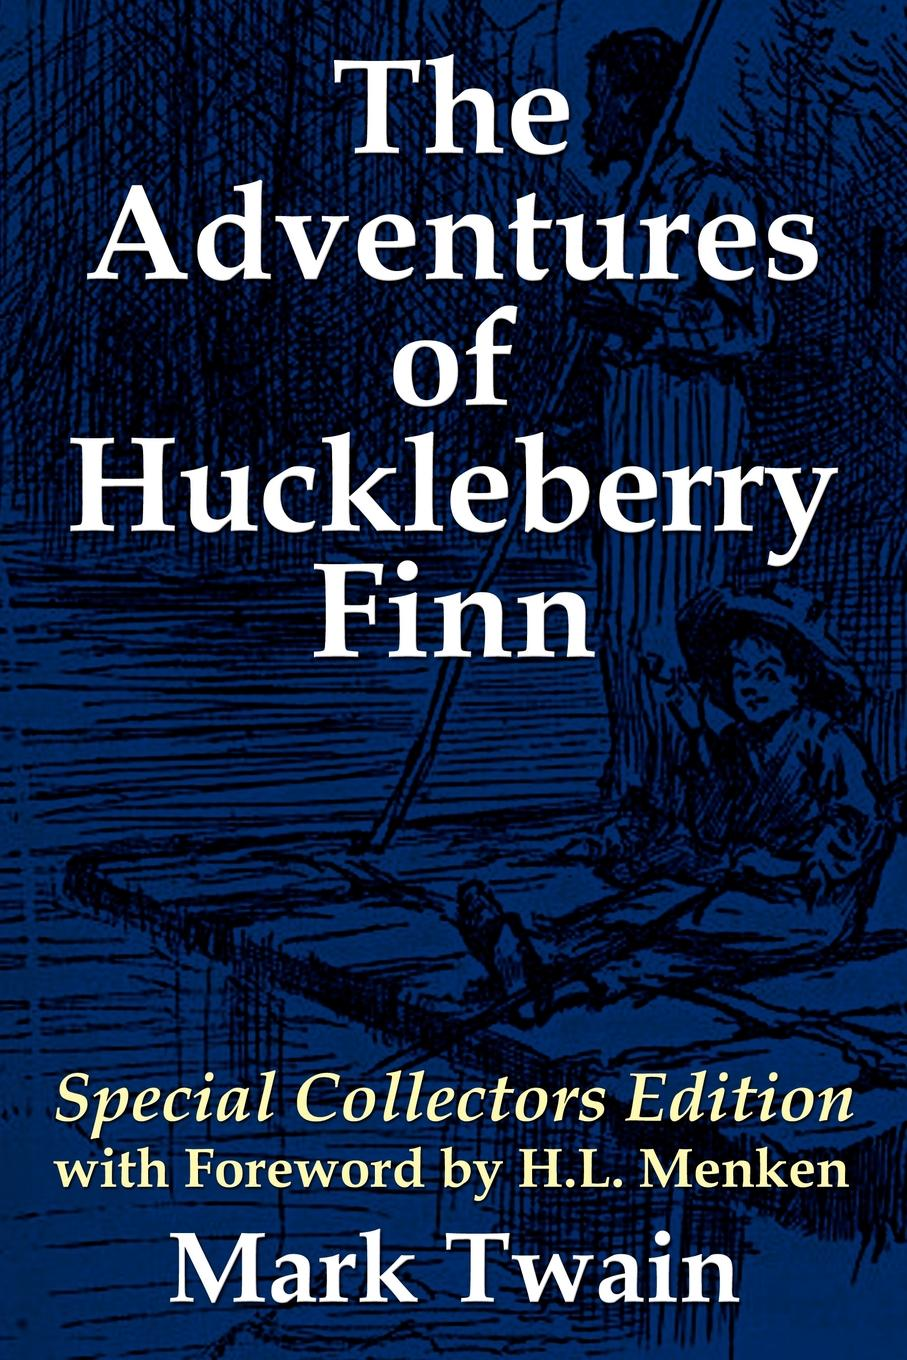 Mark Twain The Adventures of Huckleberry Finn. Special Collectors Edition with Forward by H.L. Menken twain m tom sawyer abroad tom sawyer detective том сойер за границей тос сойер сыщик